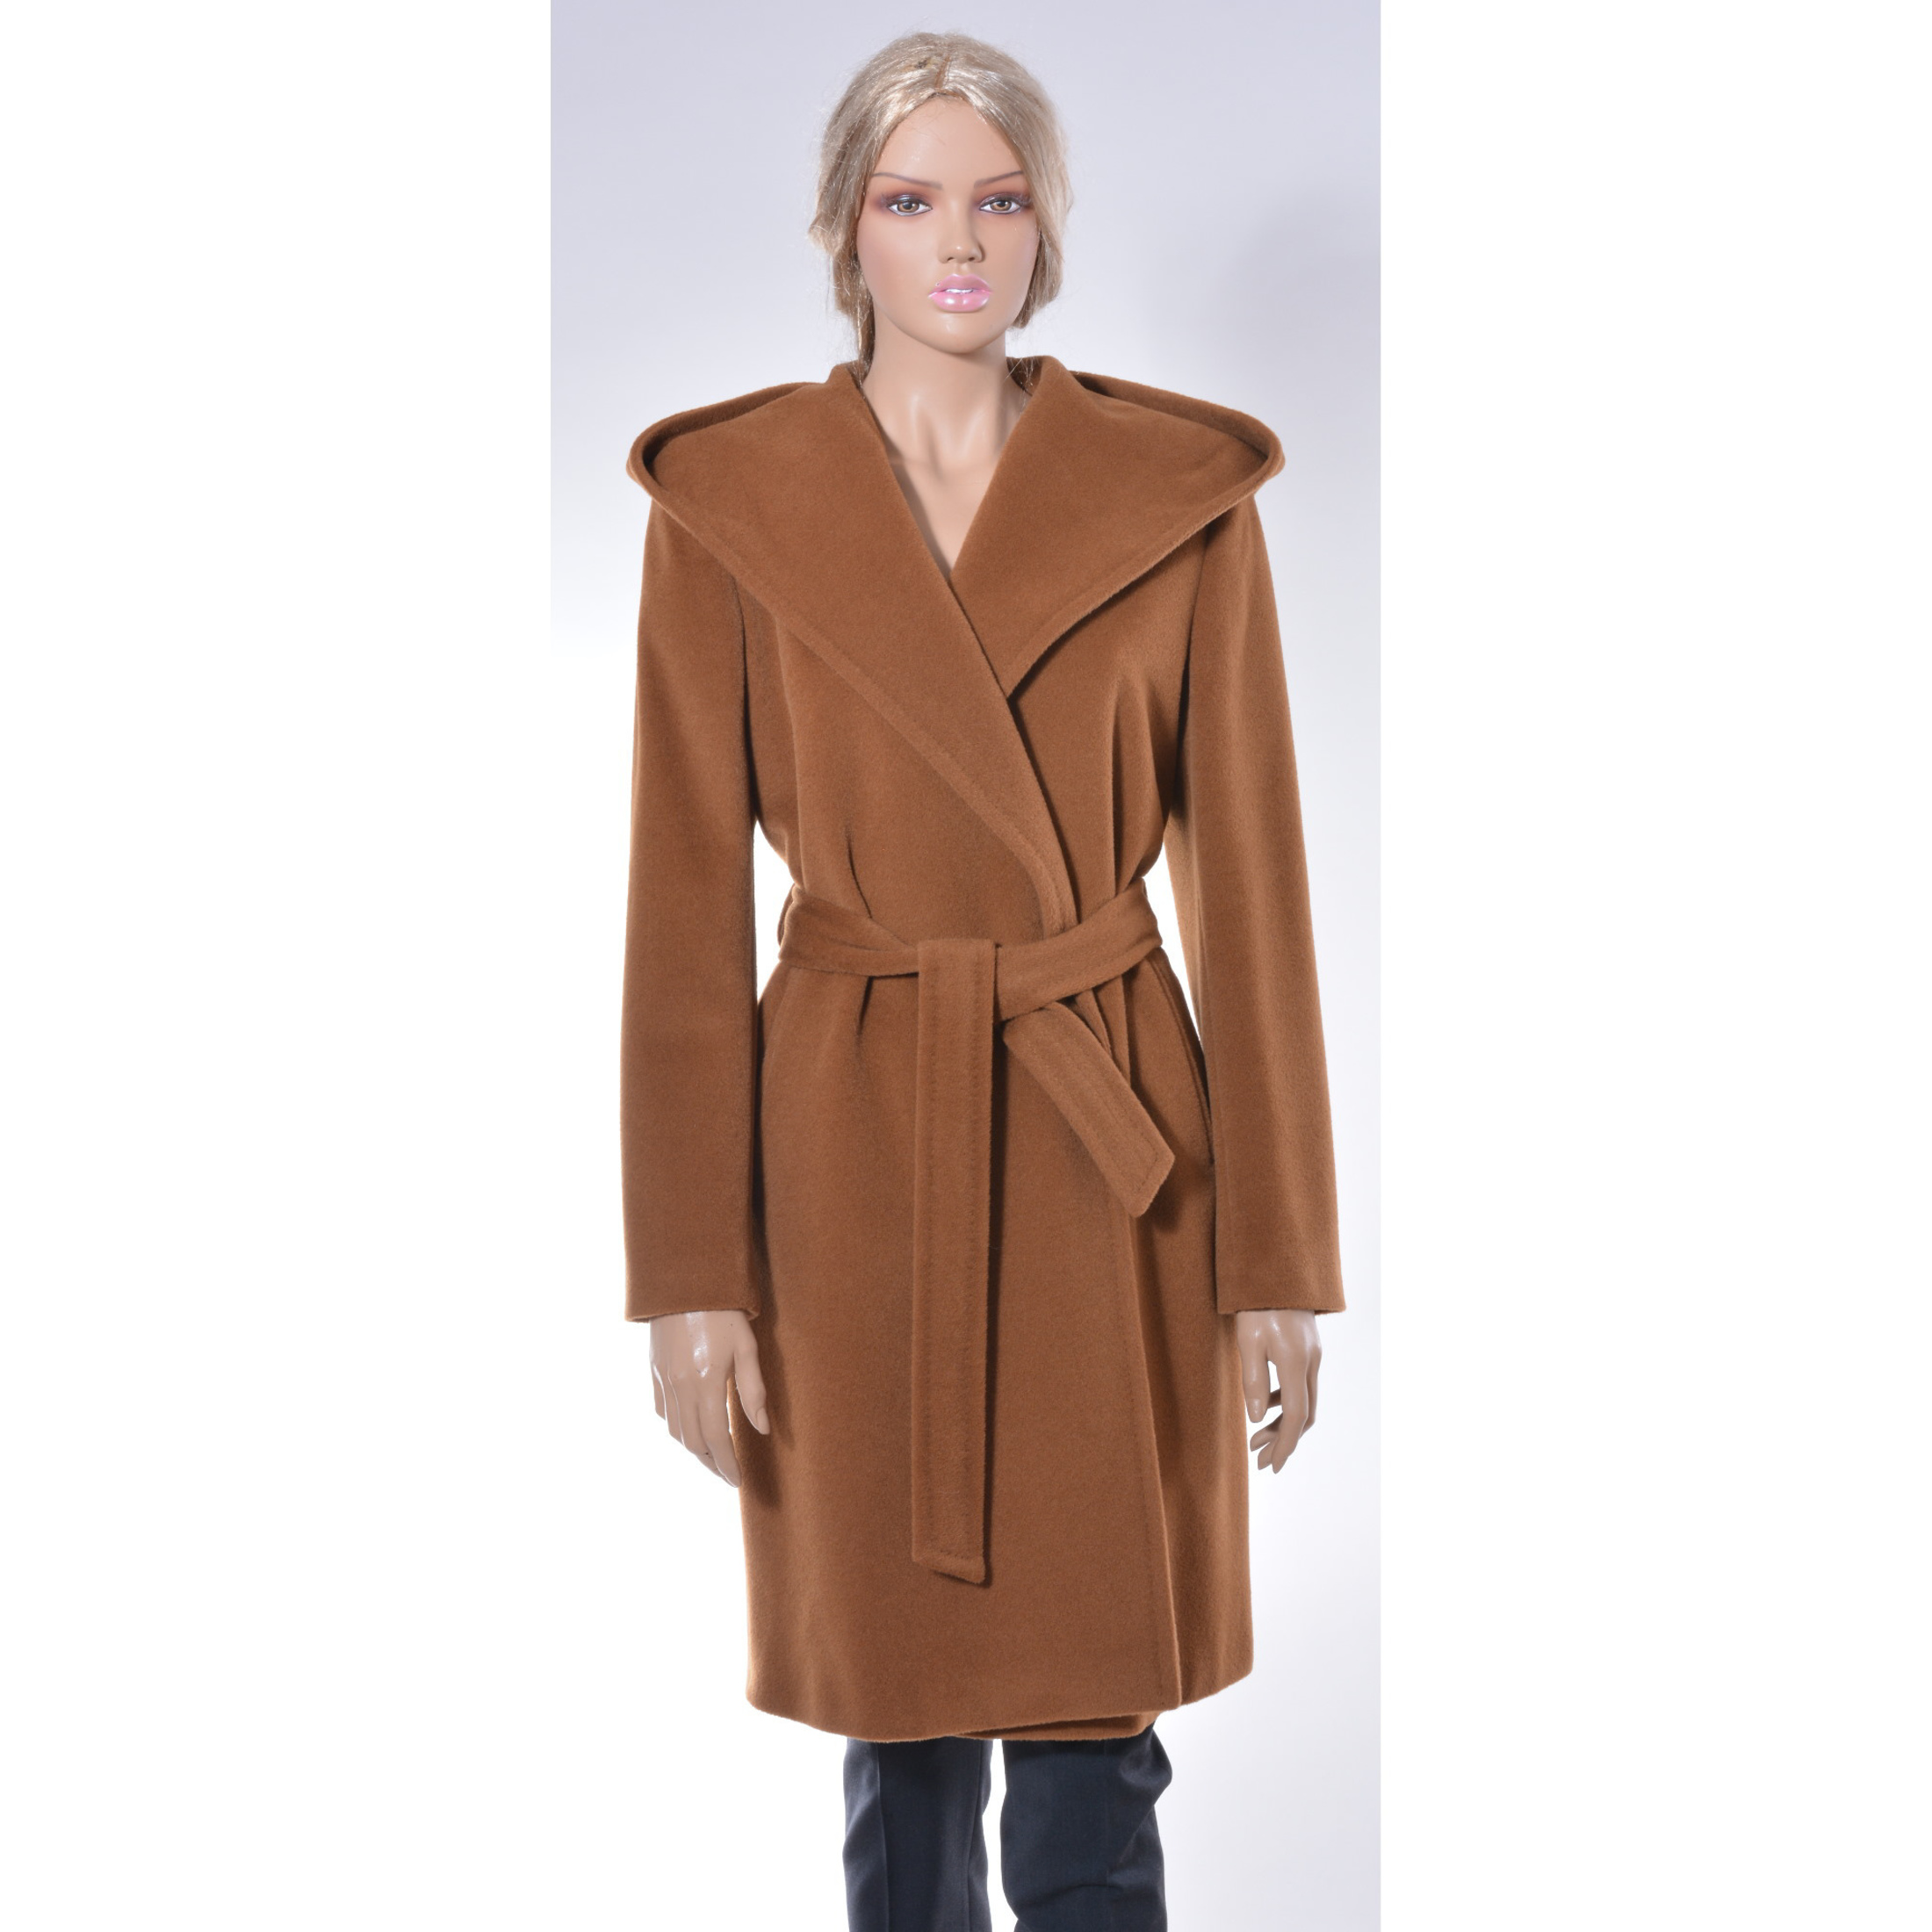 Casual camel coat with hood and belt, timeles coat, high street edition, must have, smeđi kaput,